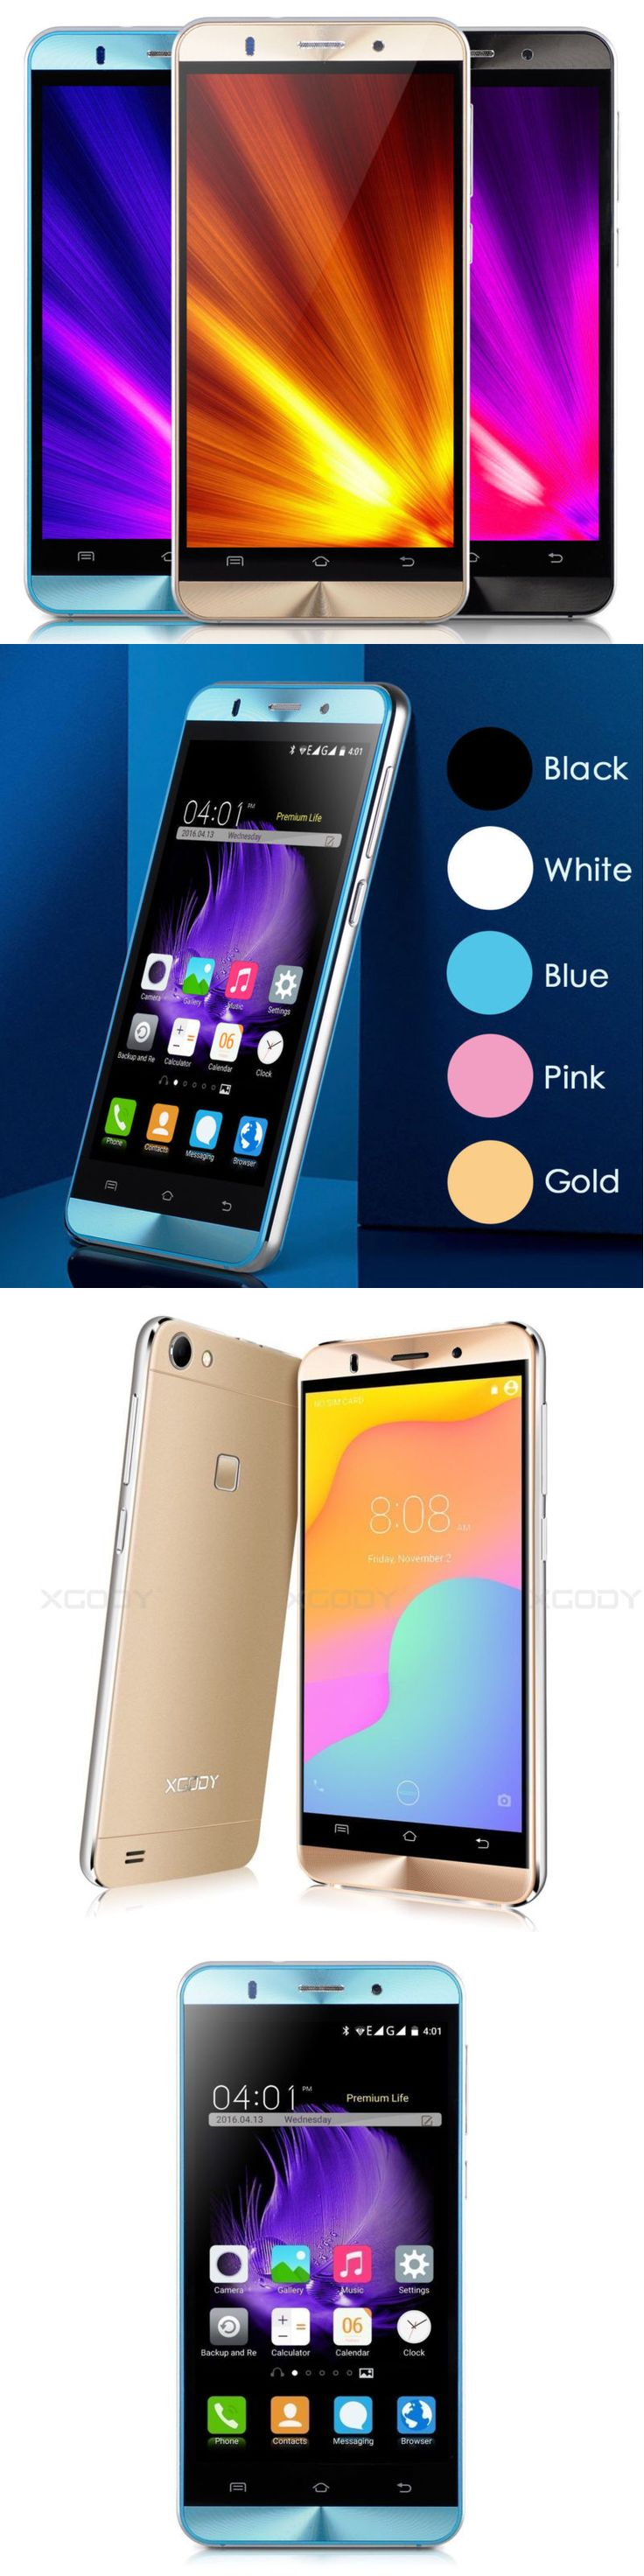 Cheap unlocked 2020 new android 81 cell phone dual sim 3g